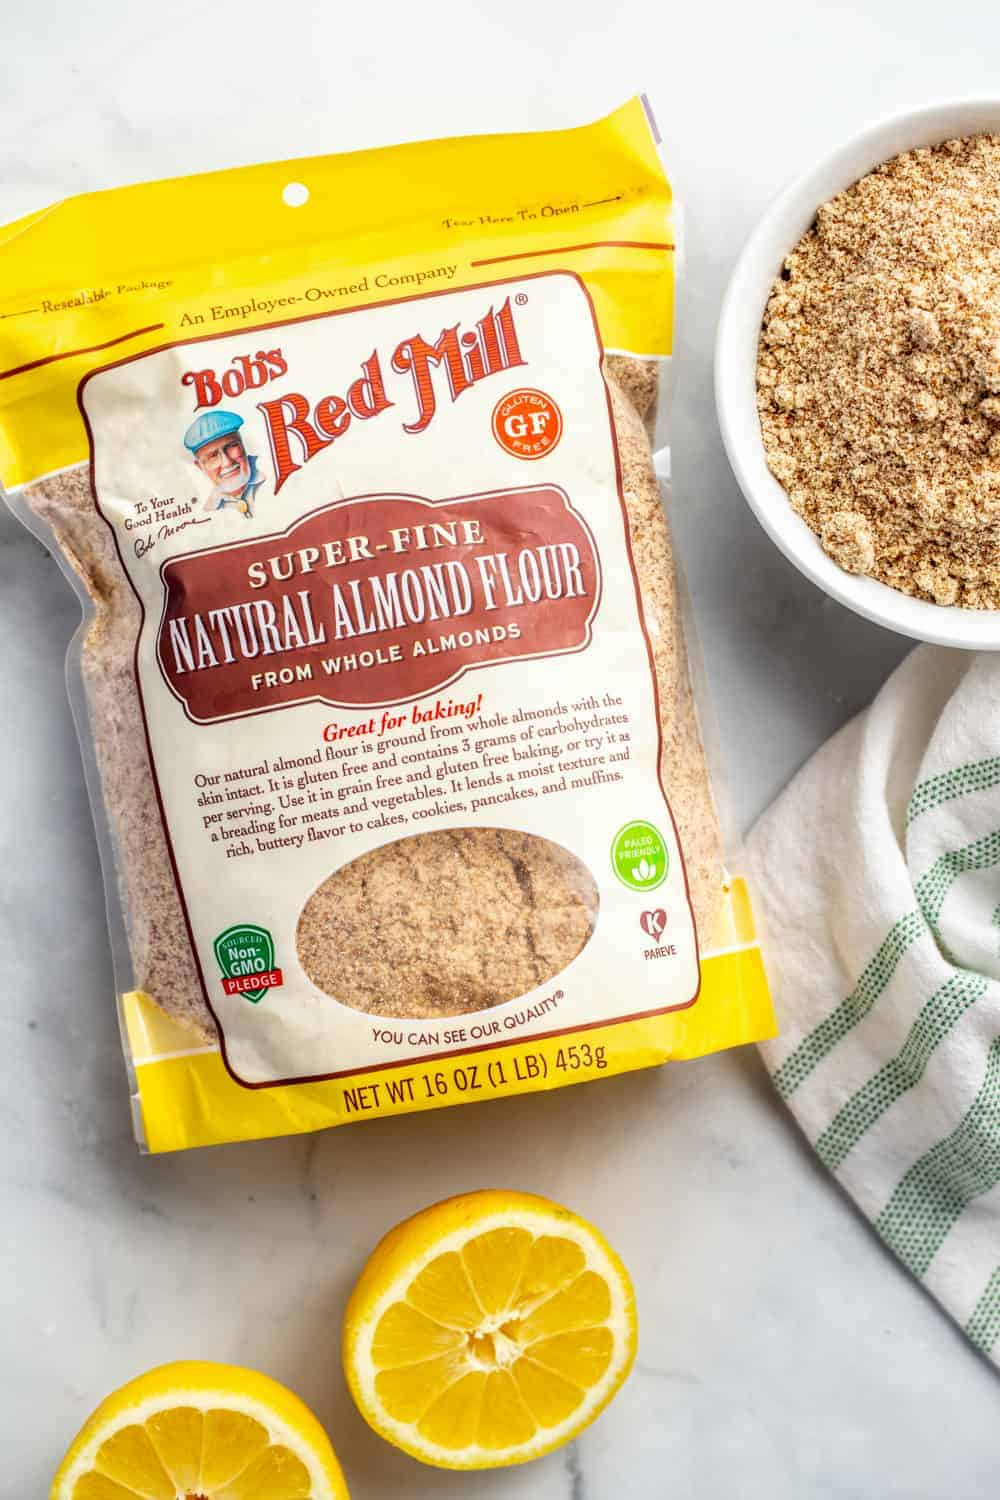 Bag of finely ground almond meal next to a bowl of almond meal and halved lemons